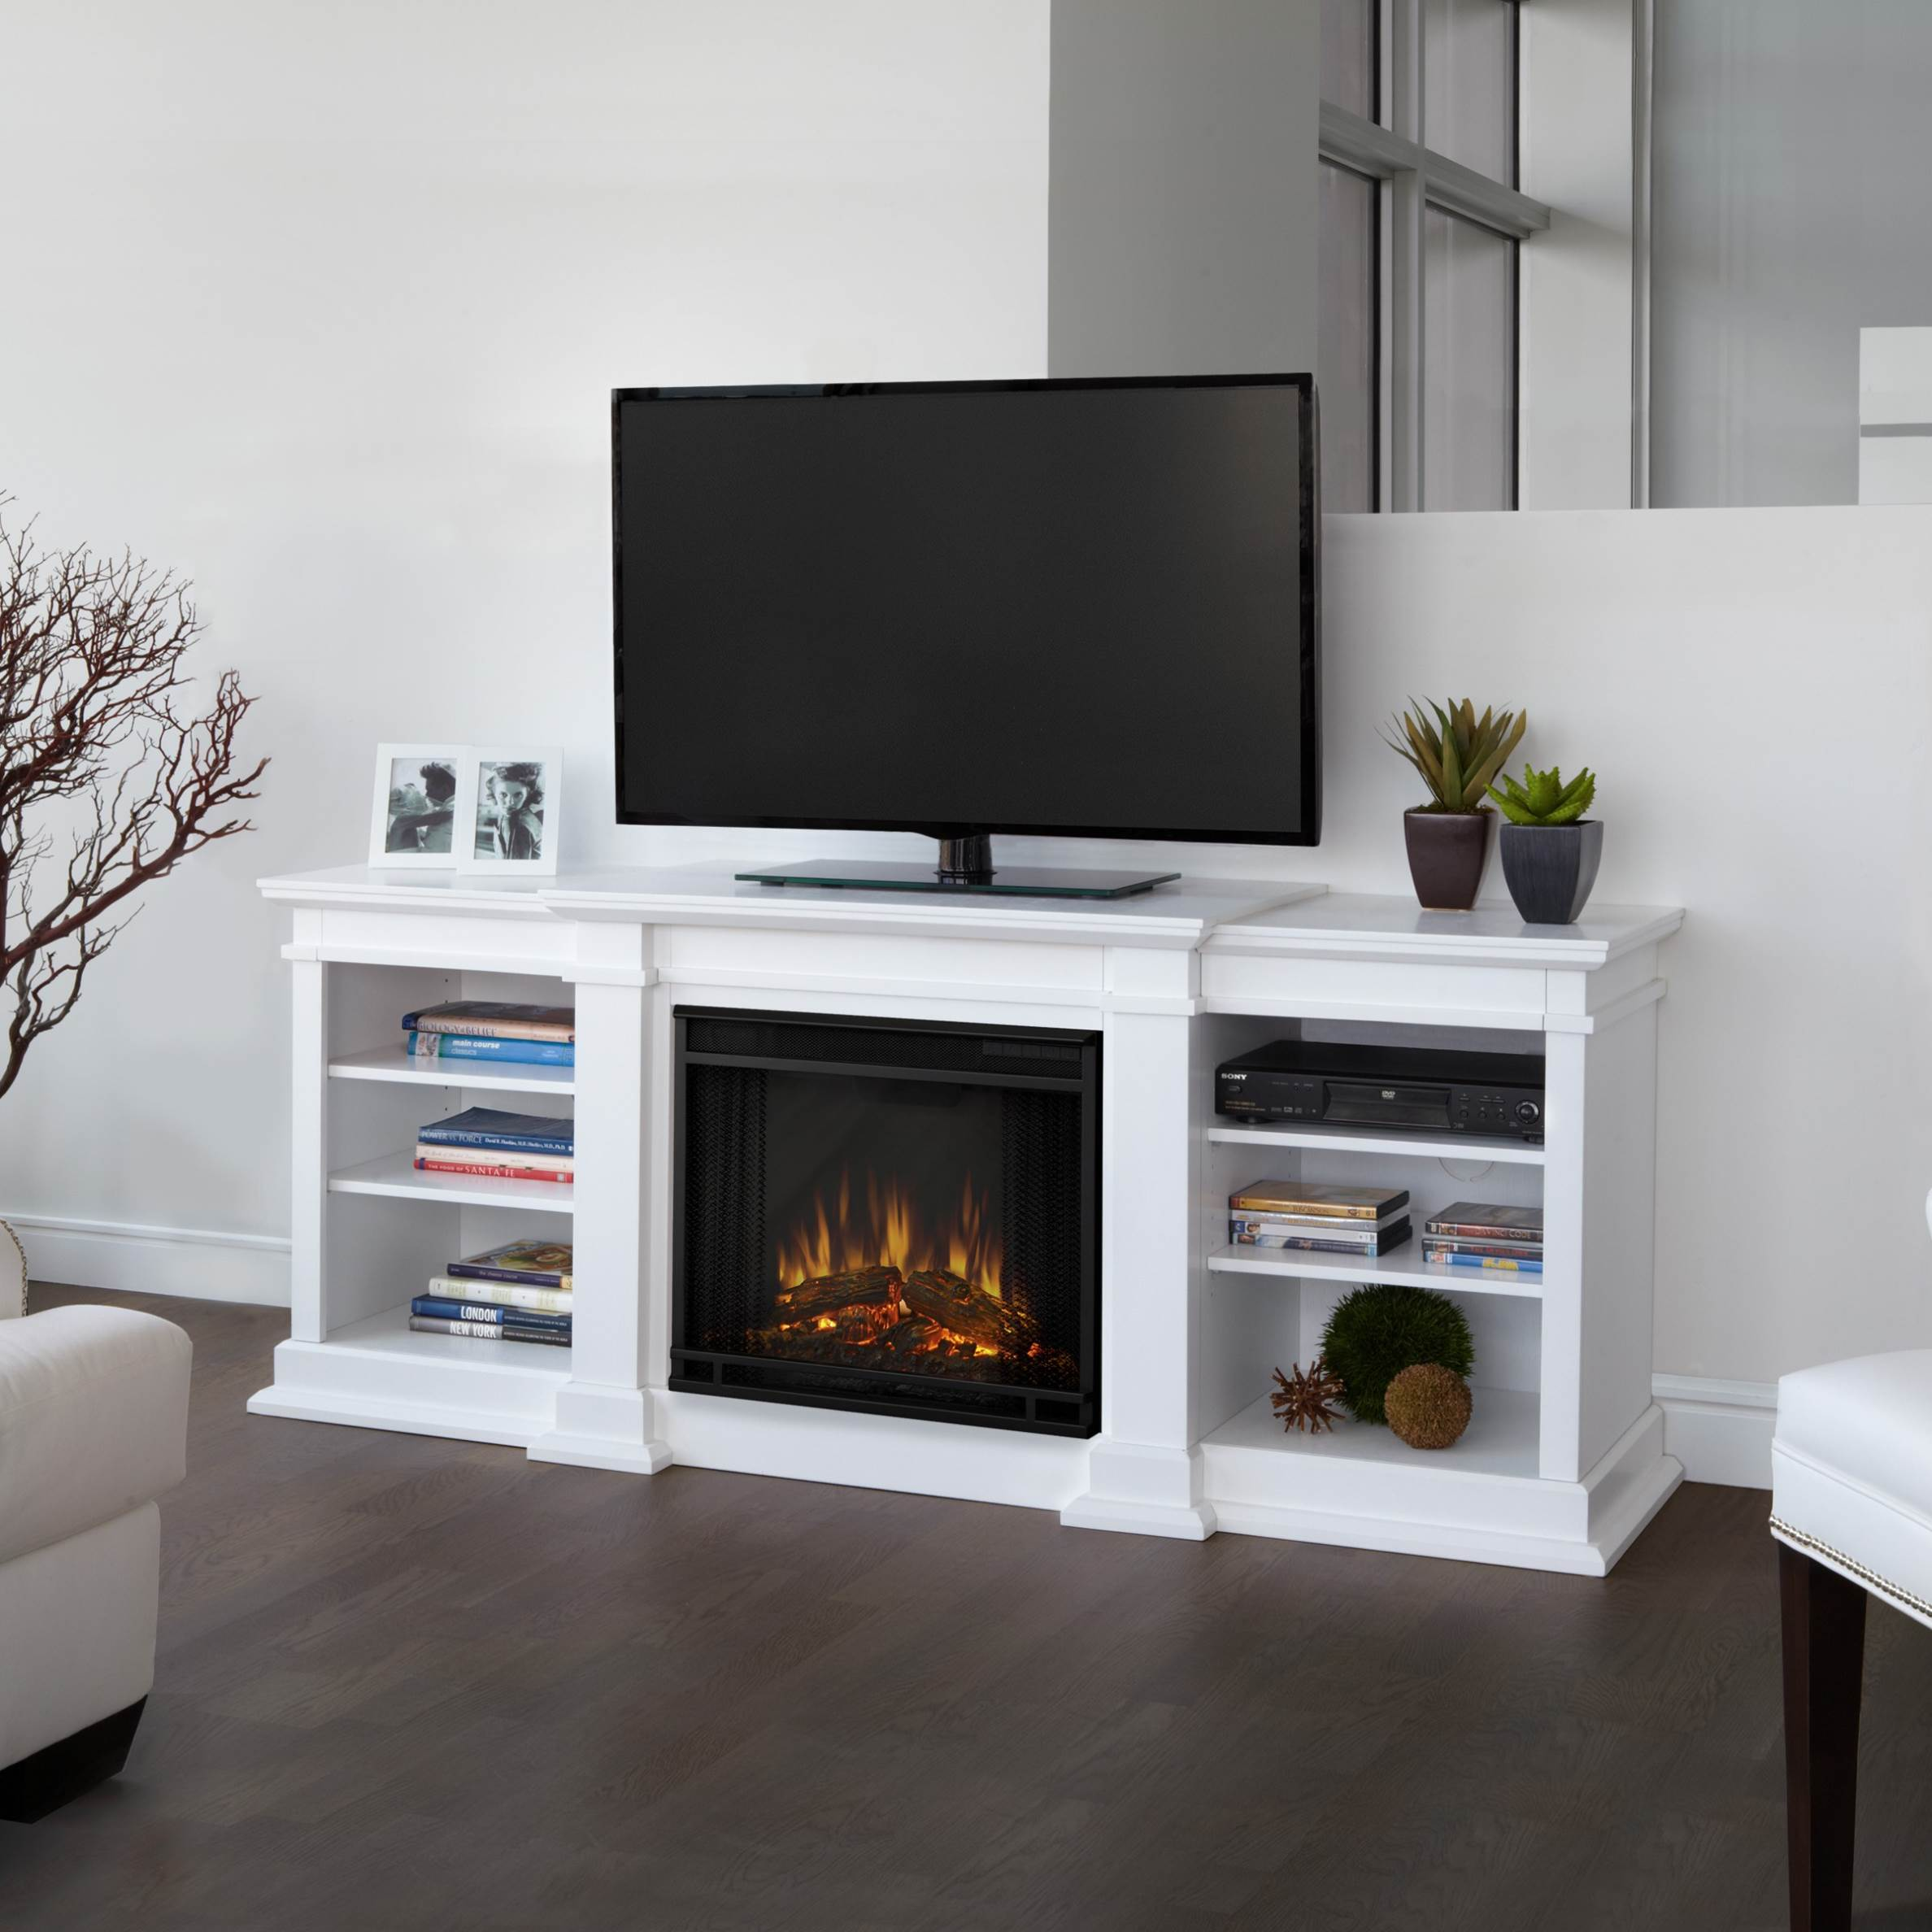 furniture reddit gavelston room centers center row ashley fireplace words console an elegant intriguing modern entertainment theater deals few home costco